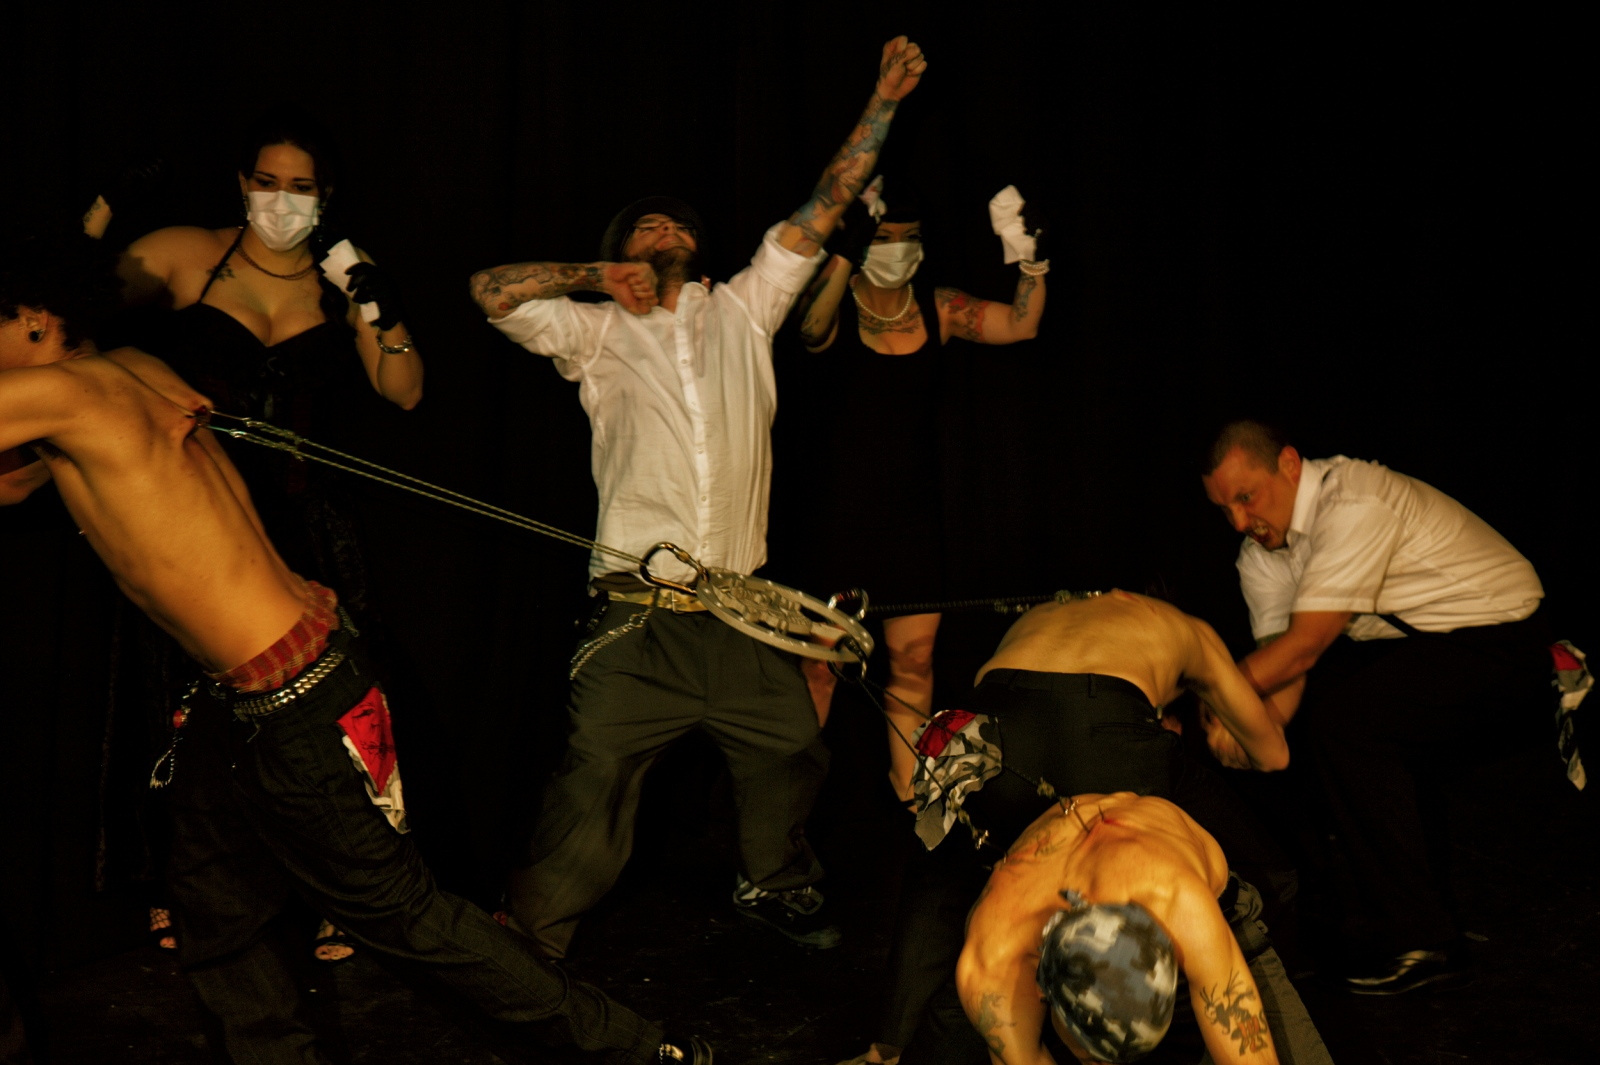 Performance by members of theCabaret of Flesh in which they attach hooks to their backs and run in different directions.